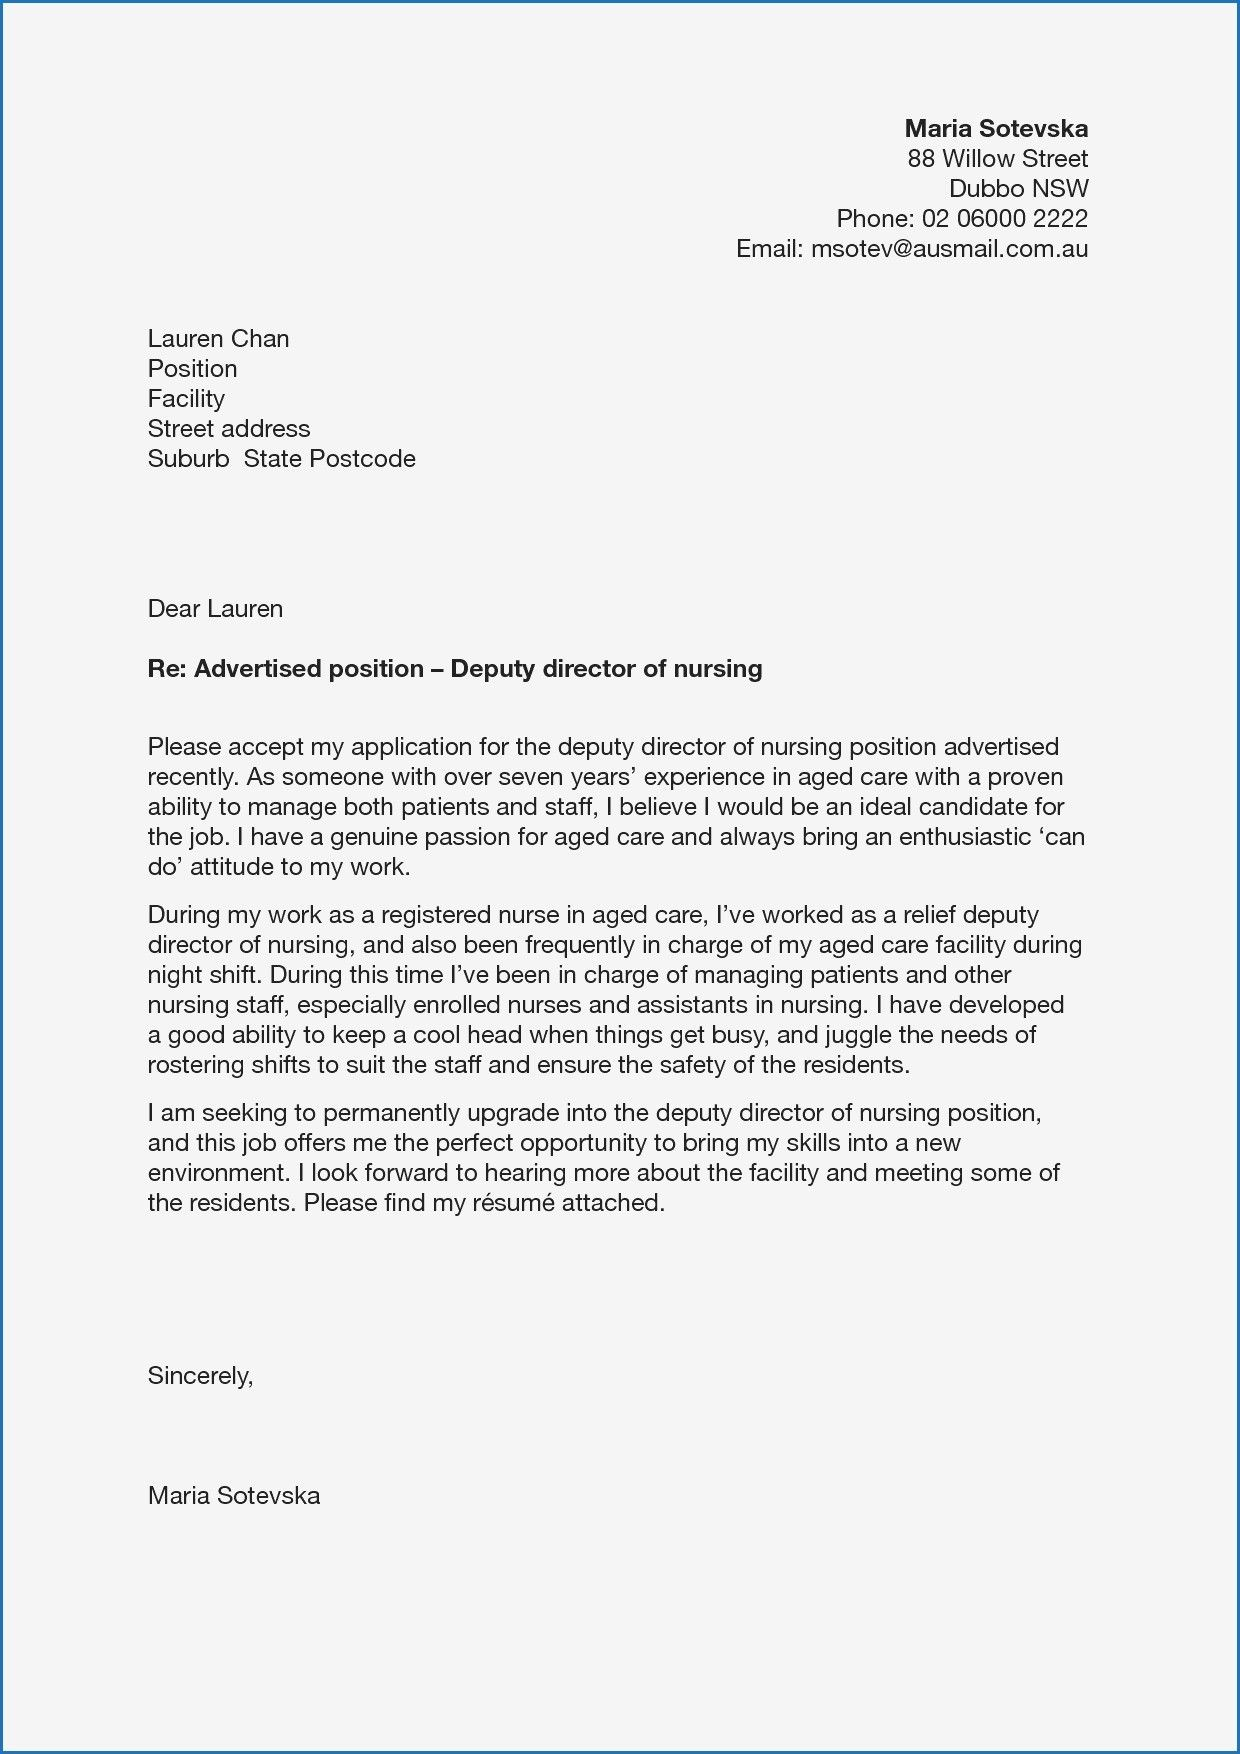 download fresh cover letter for aged care job